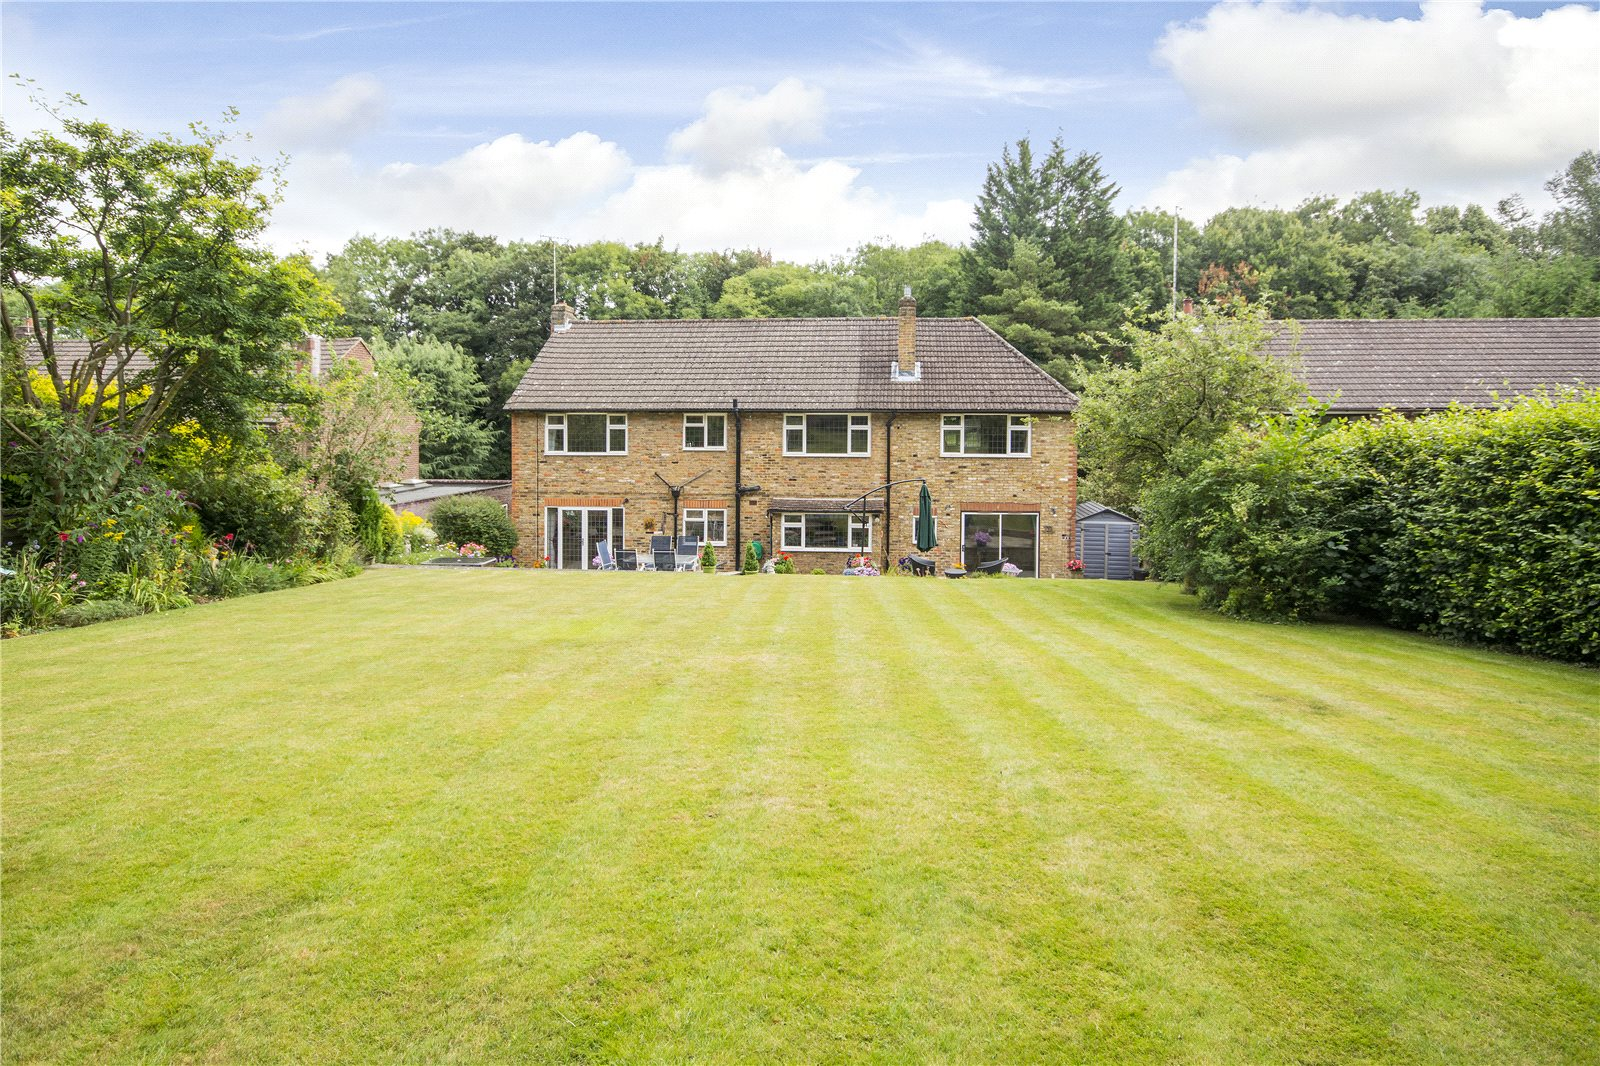 Additional photo for property listing at Claydon End, Chalfont St Peter, Gerrards Cross, Buckinghamshire, SL9 Gerrards Cross, Inglaterra